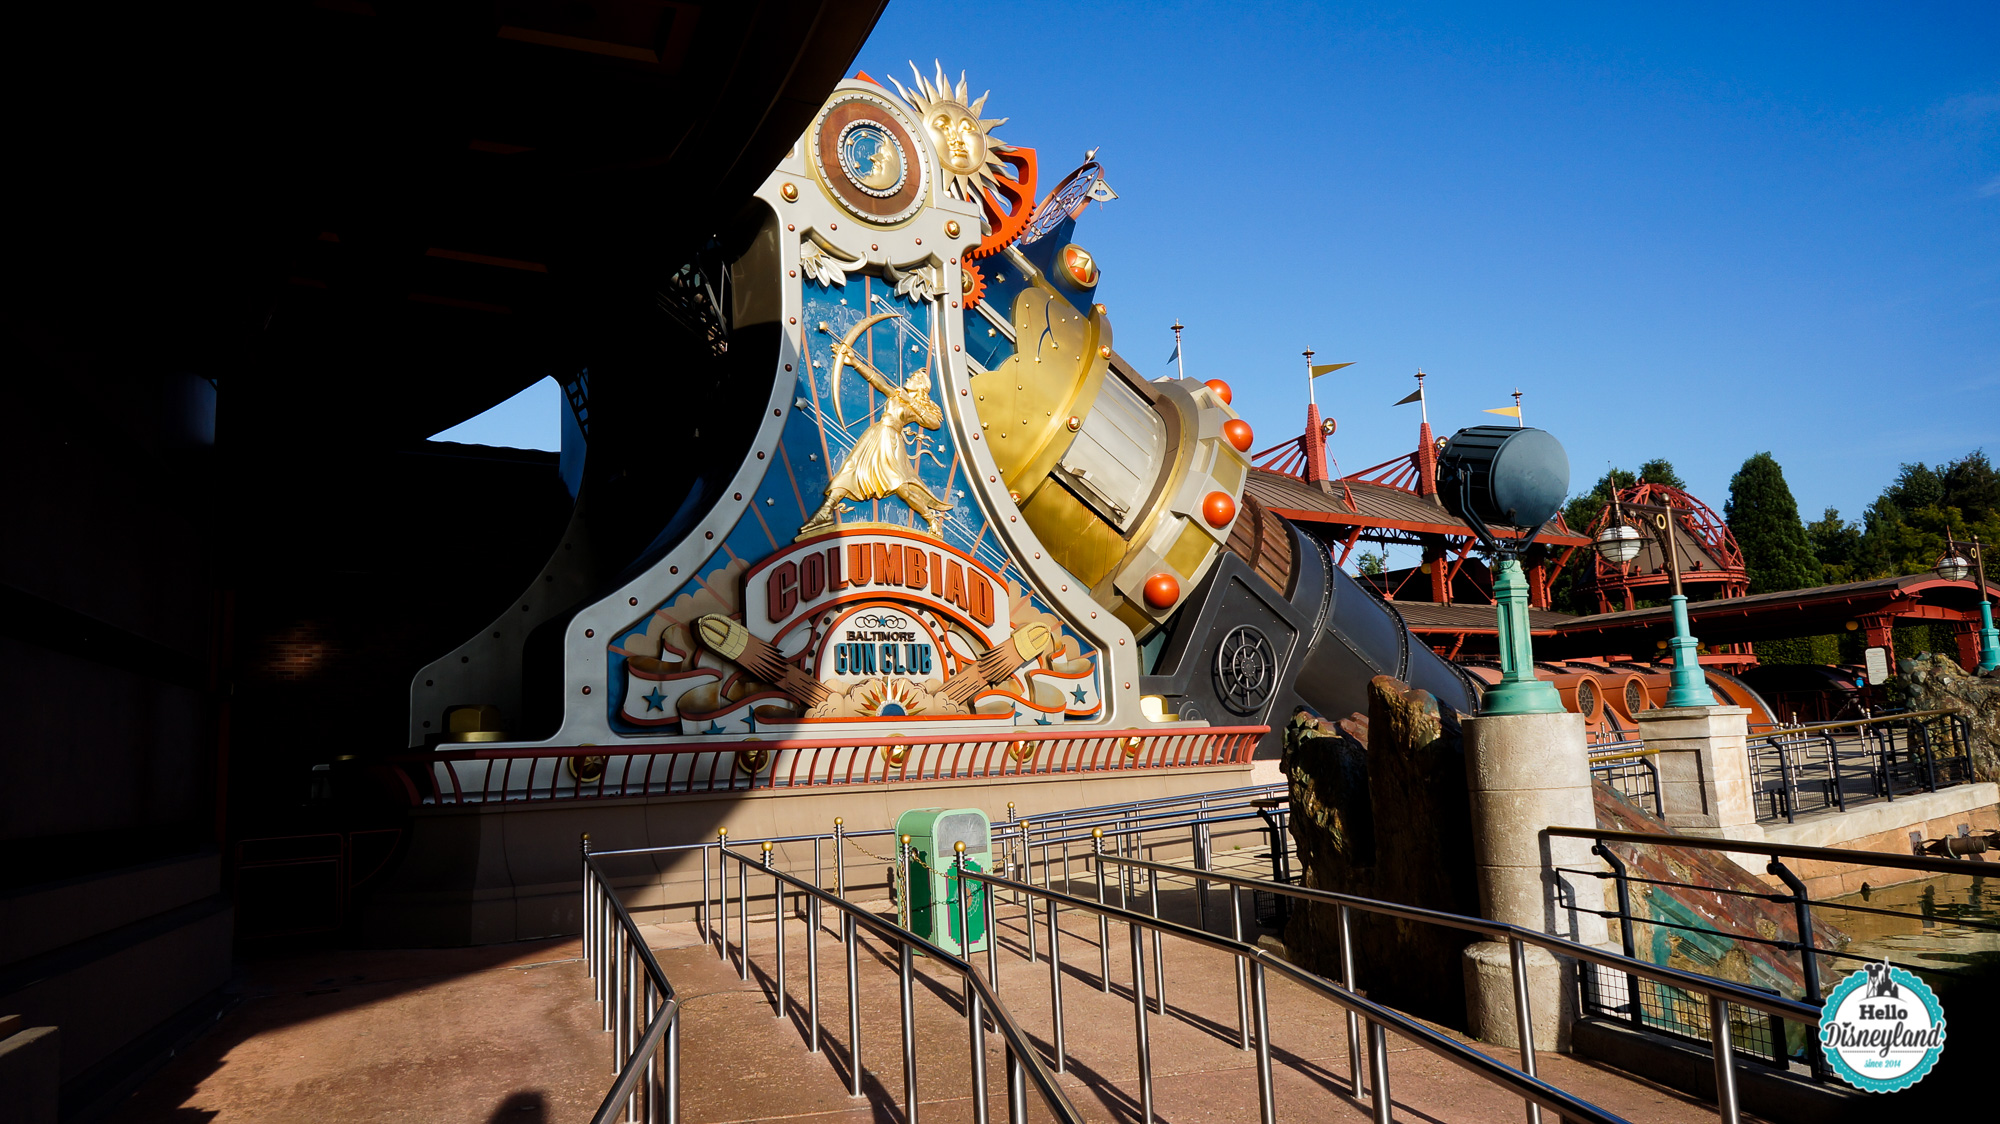 space mountain mission 1 - photo #15